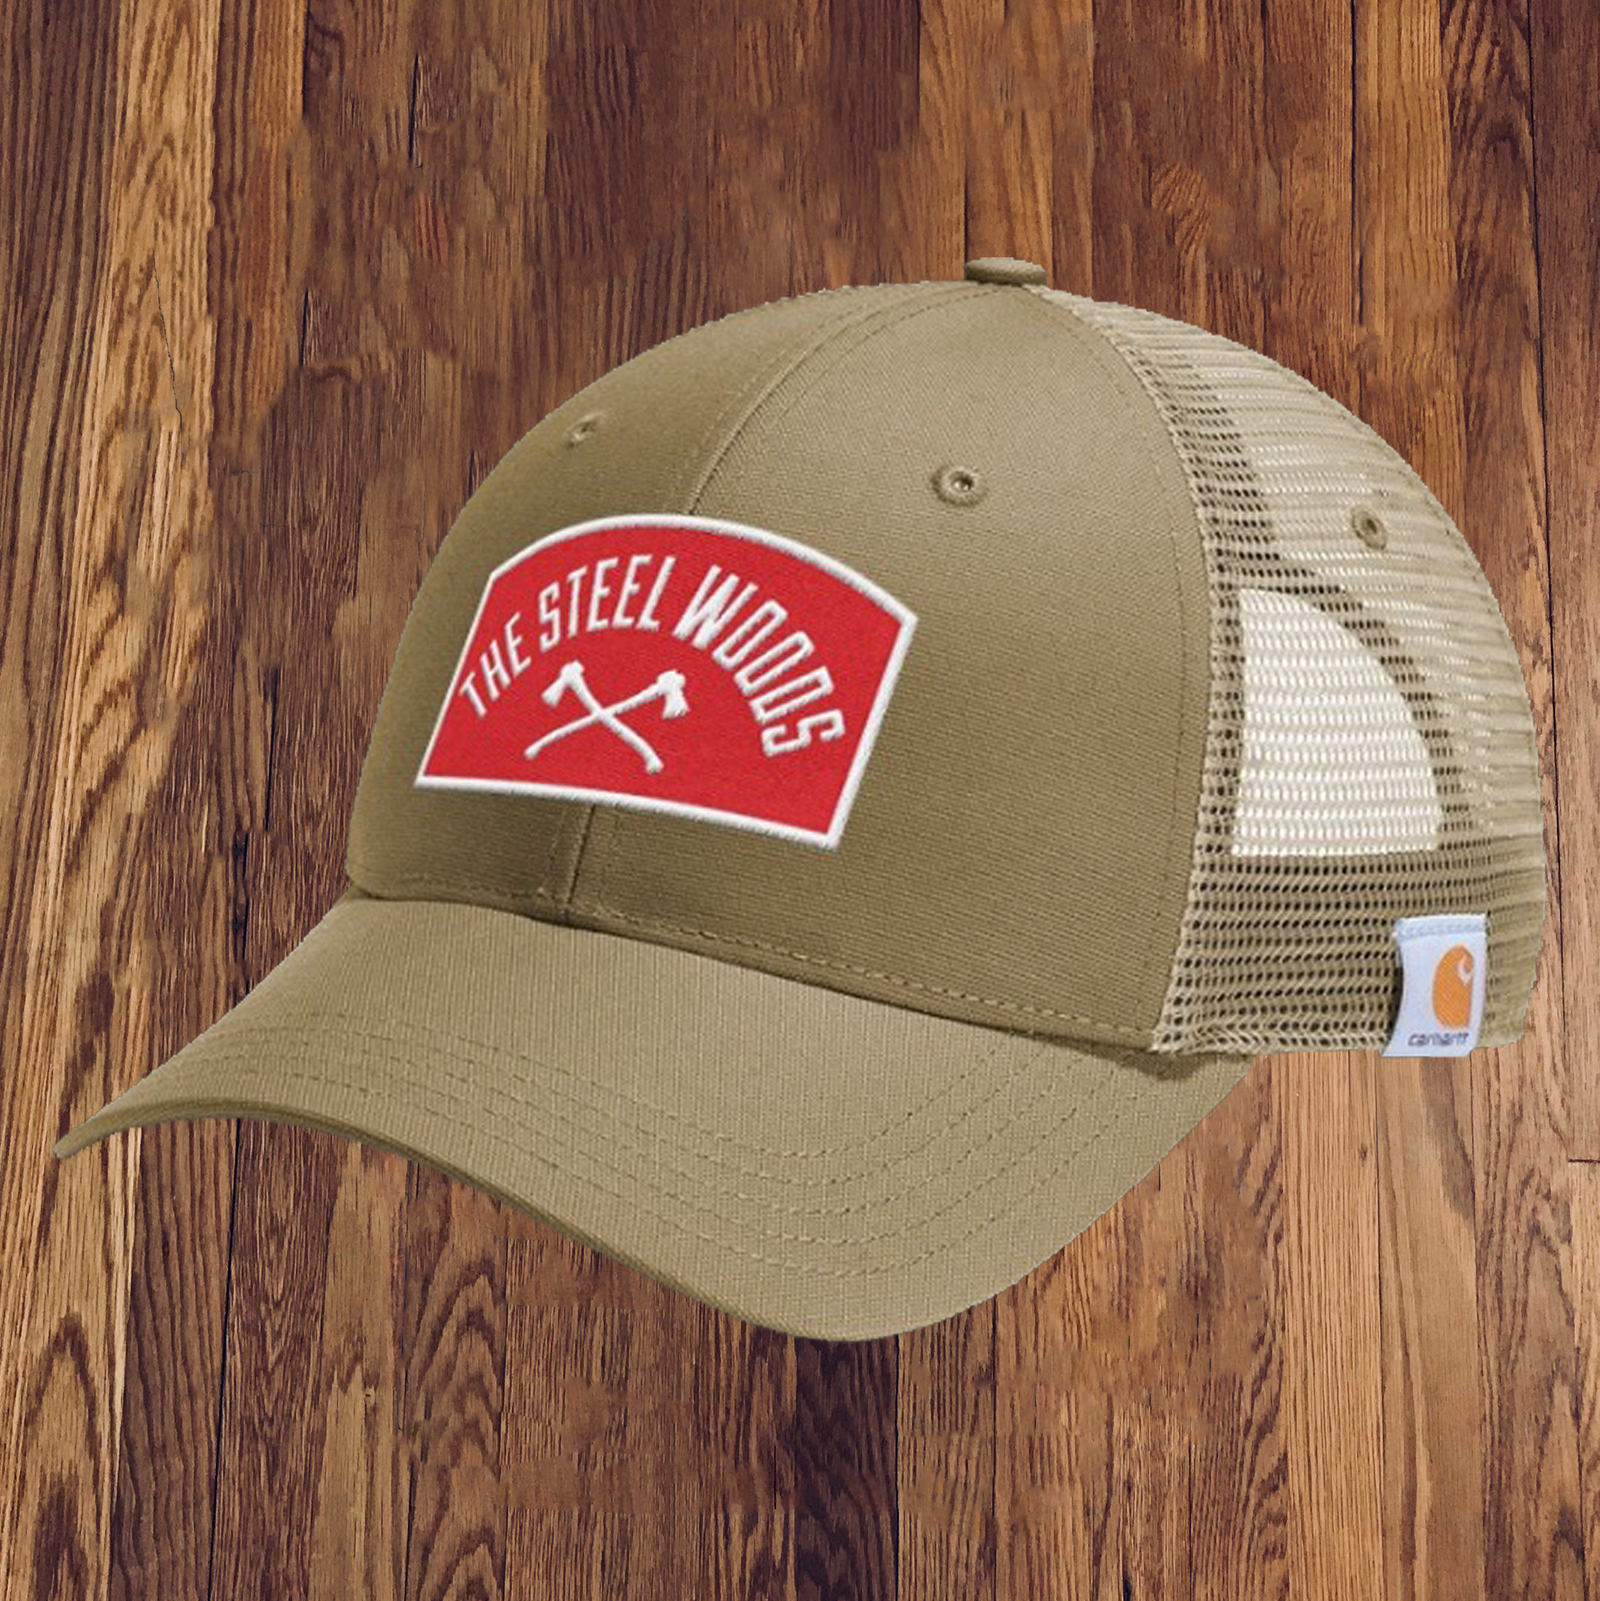 The Steel Woods Dark Khaki Patch Hat